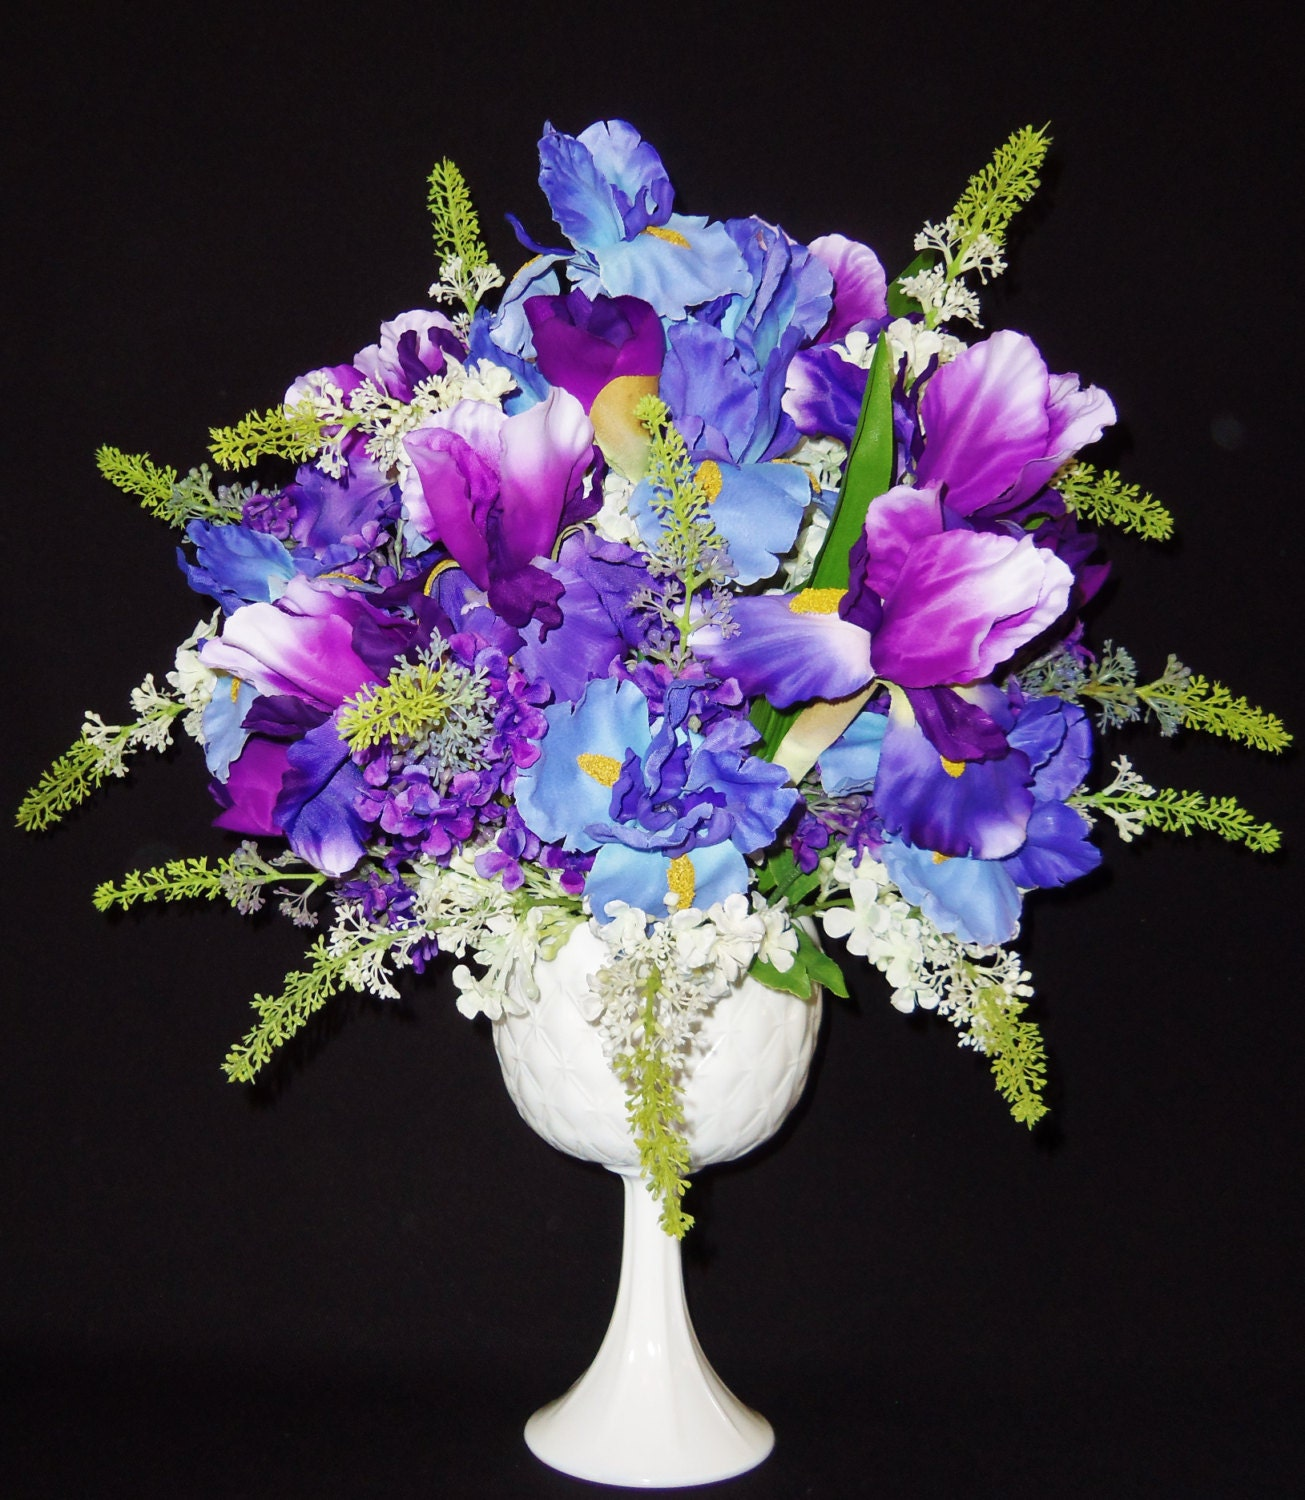 silk flower arrangement purple iris blue iris white vase. Black Bedroom Furniture Sets. Home Design Ideas